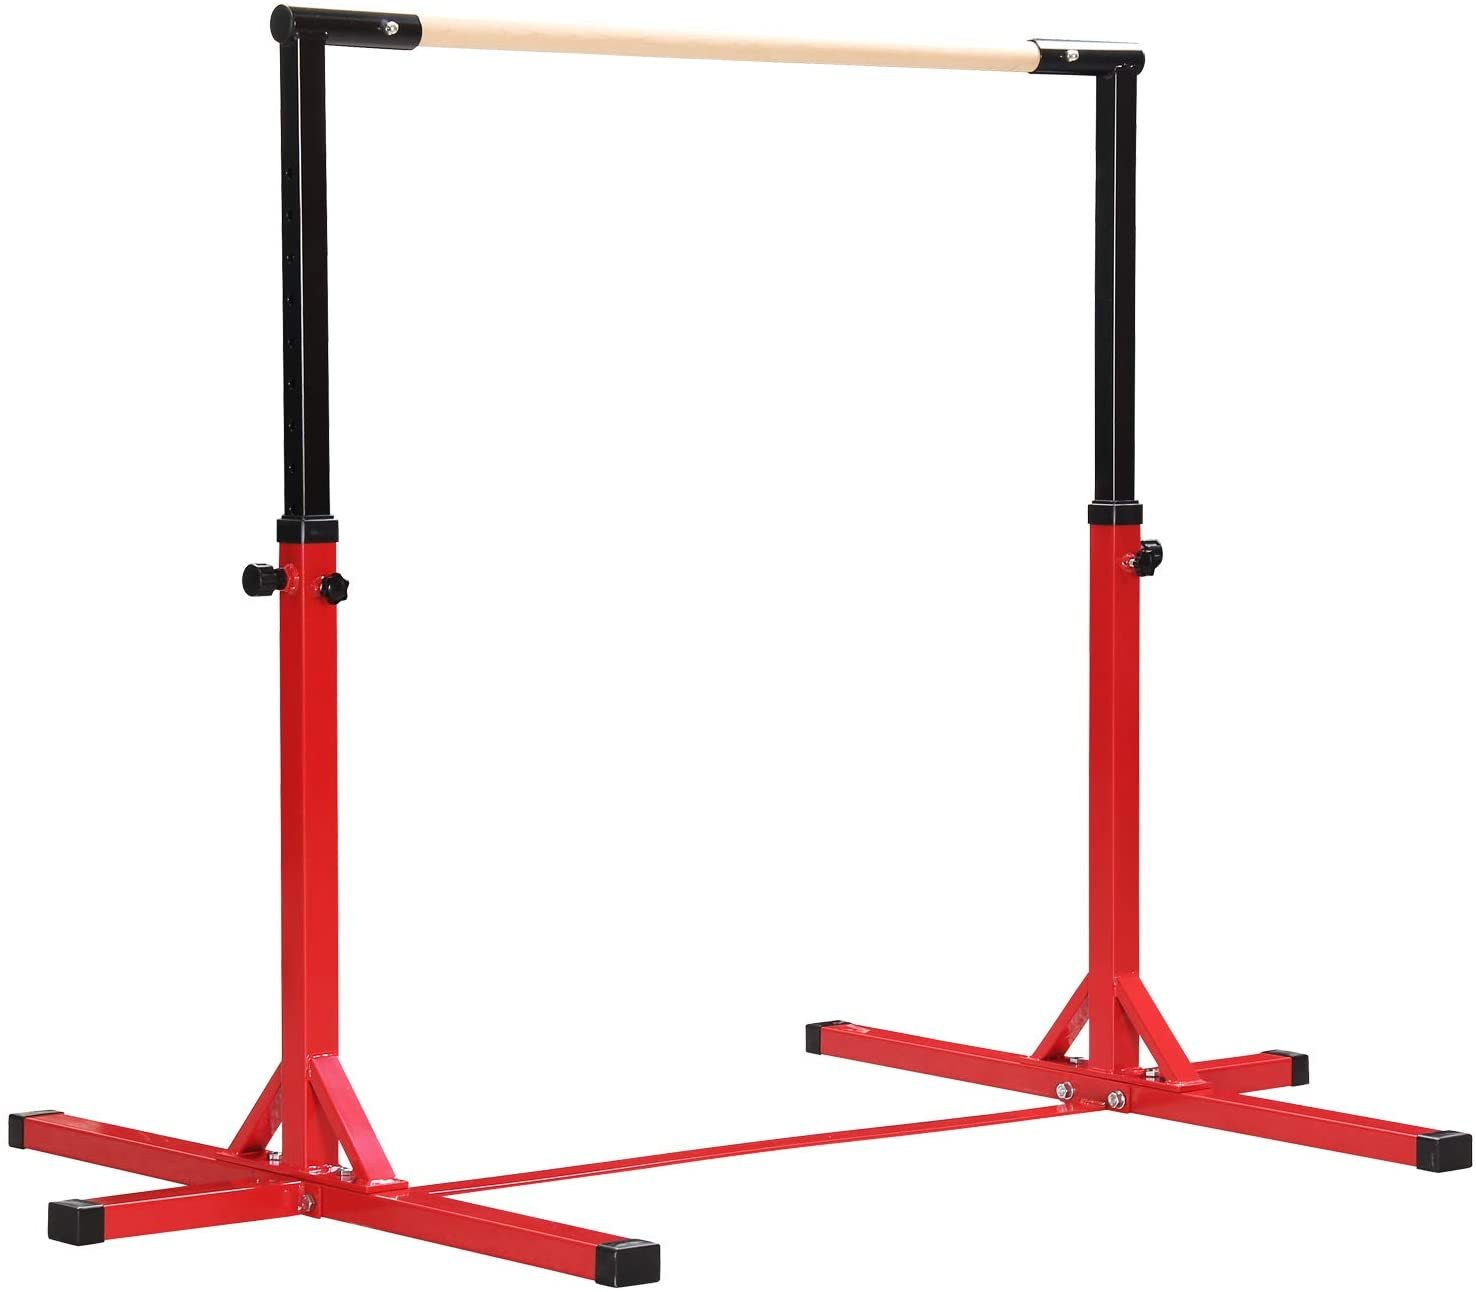 Horizontal Bar Adjustable Gymnastics Training Kip Bars Junior Gym Tumbling Bar for Kids